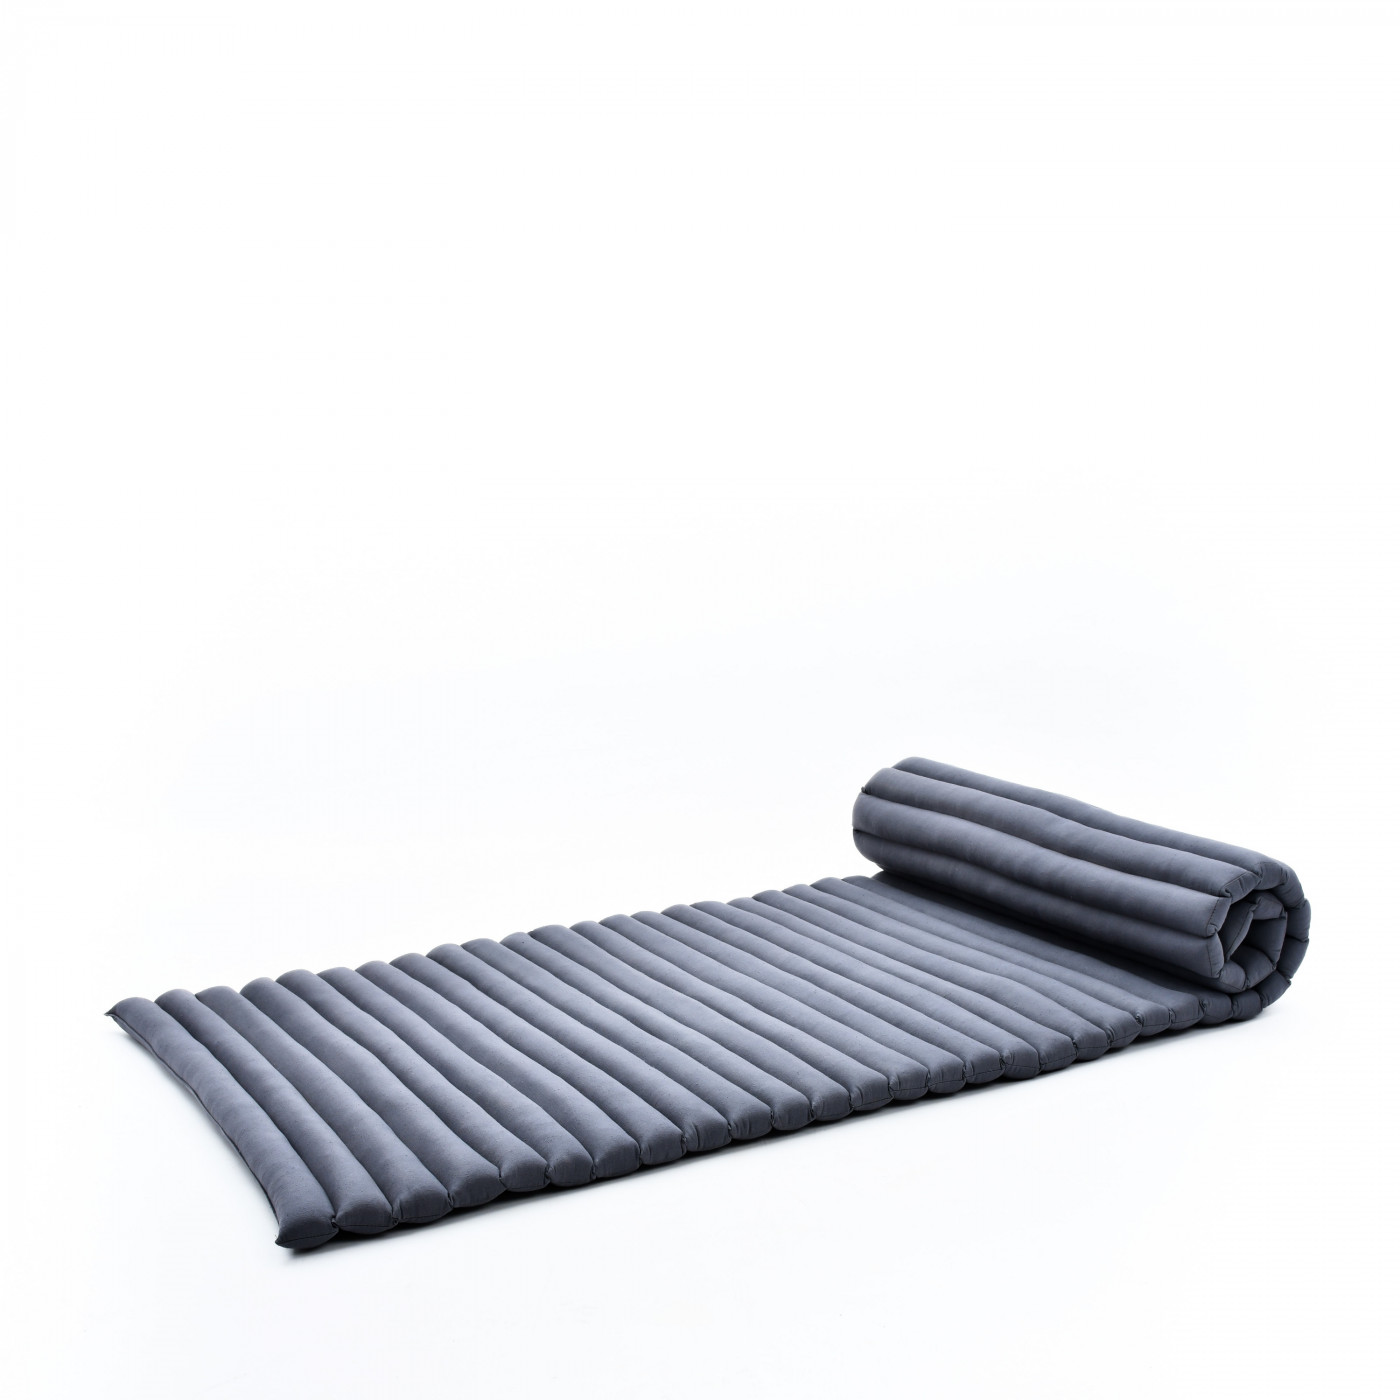 Picture of: Leewadee Roll Up Thai Mattress 200x76x5 Cm Guest Bed Yoga Floor Mat Thai Massage Pad Eco Friendly Organic And Natural Kapok Anthracite